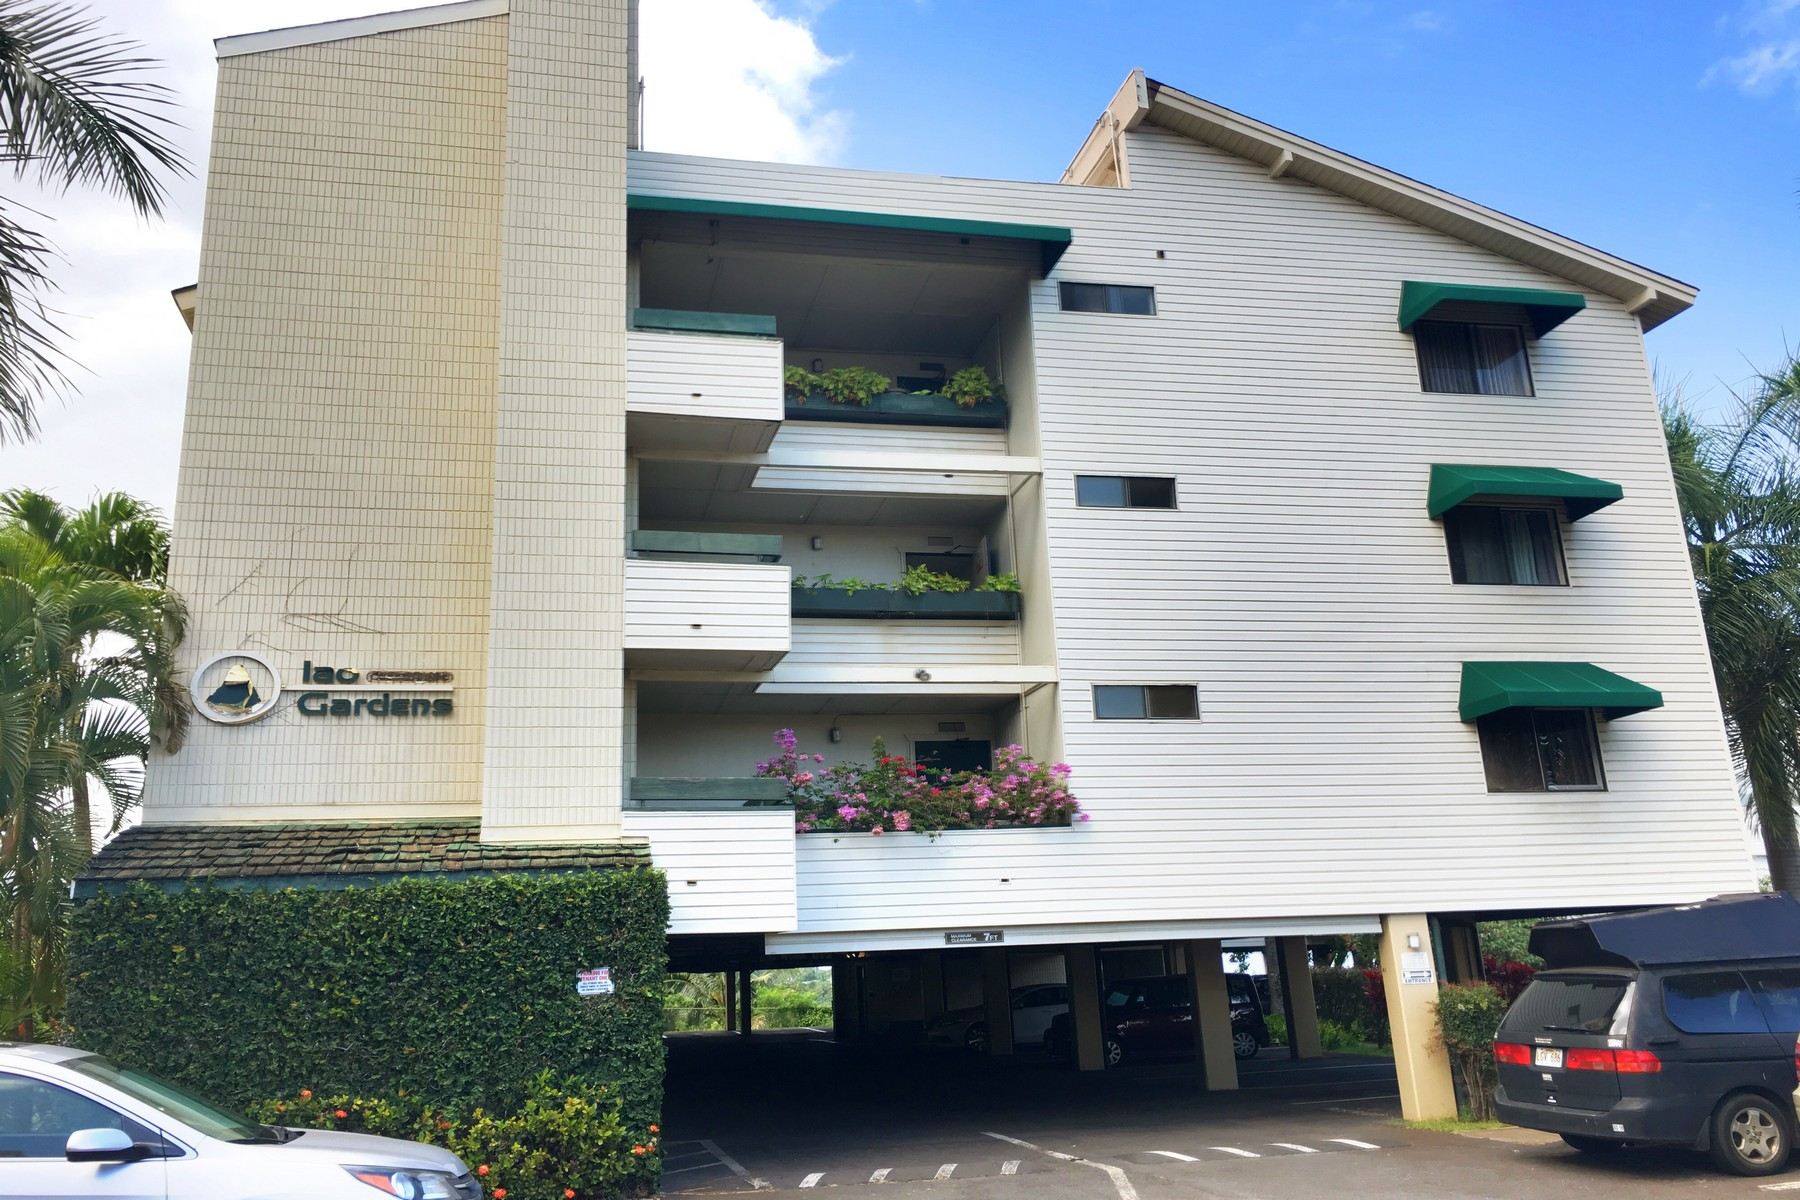 Condominium for Sale at A Hidden Gem In The Heart of Wailuku 2180 Vineyard Street, Iao Gardens 309 Wailuku, Hawaii 96793 United States